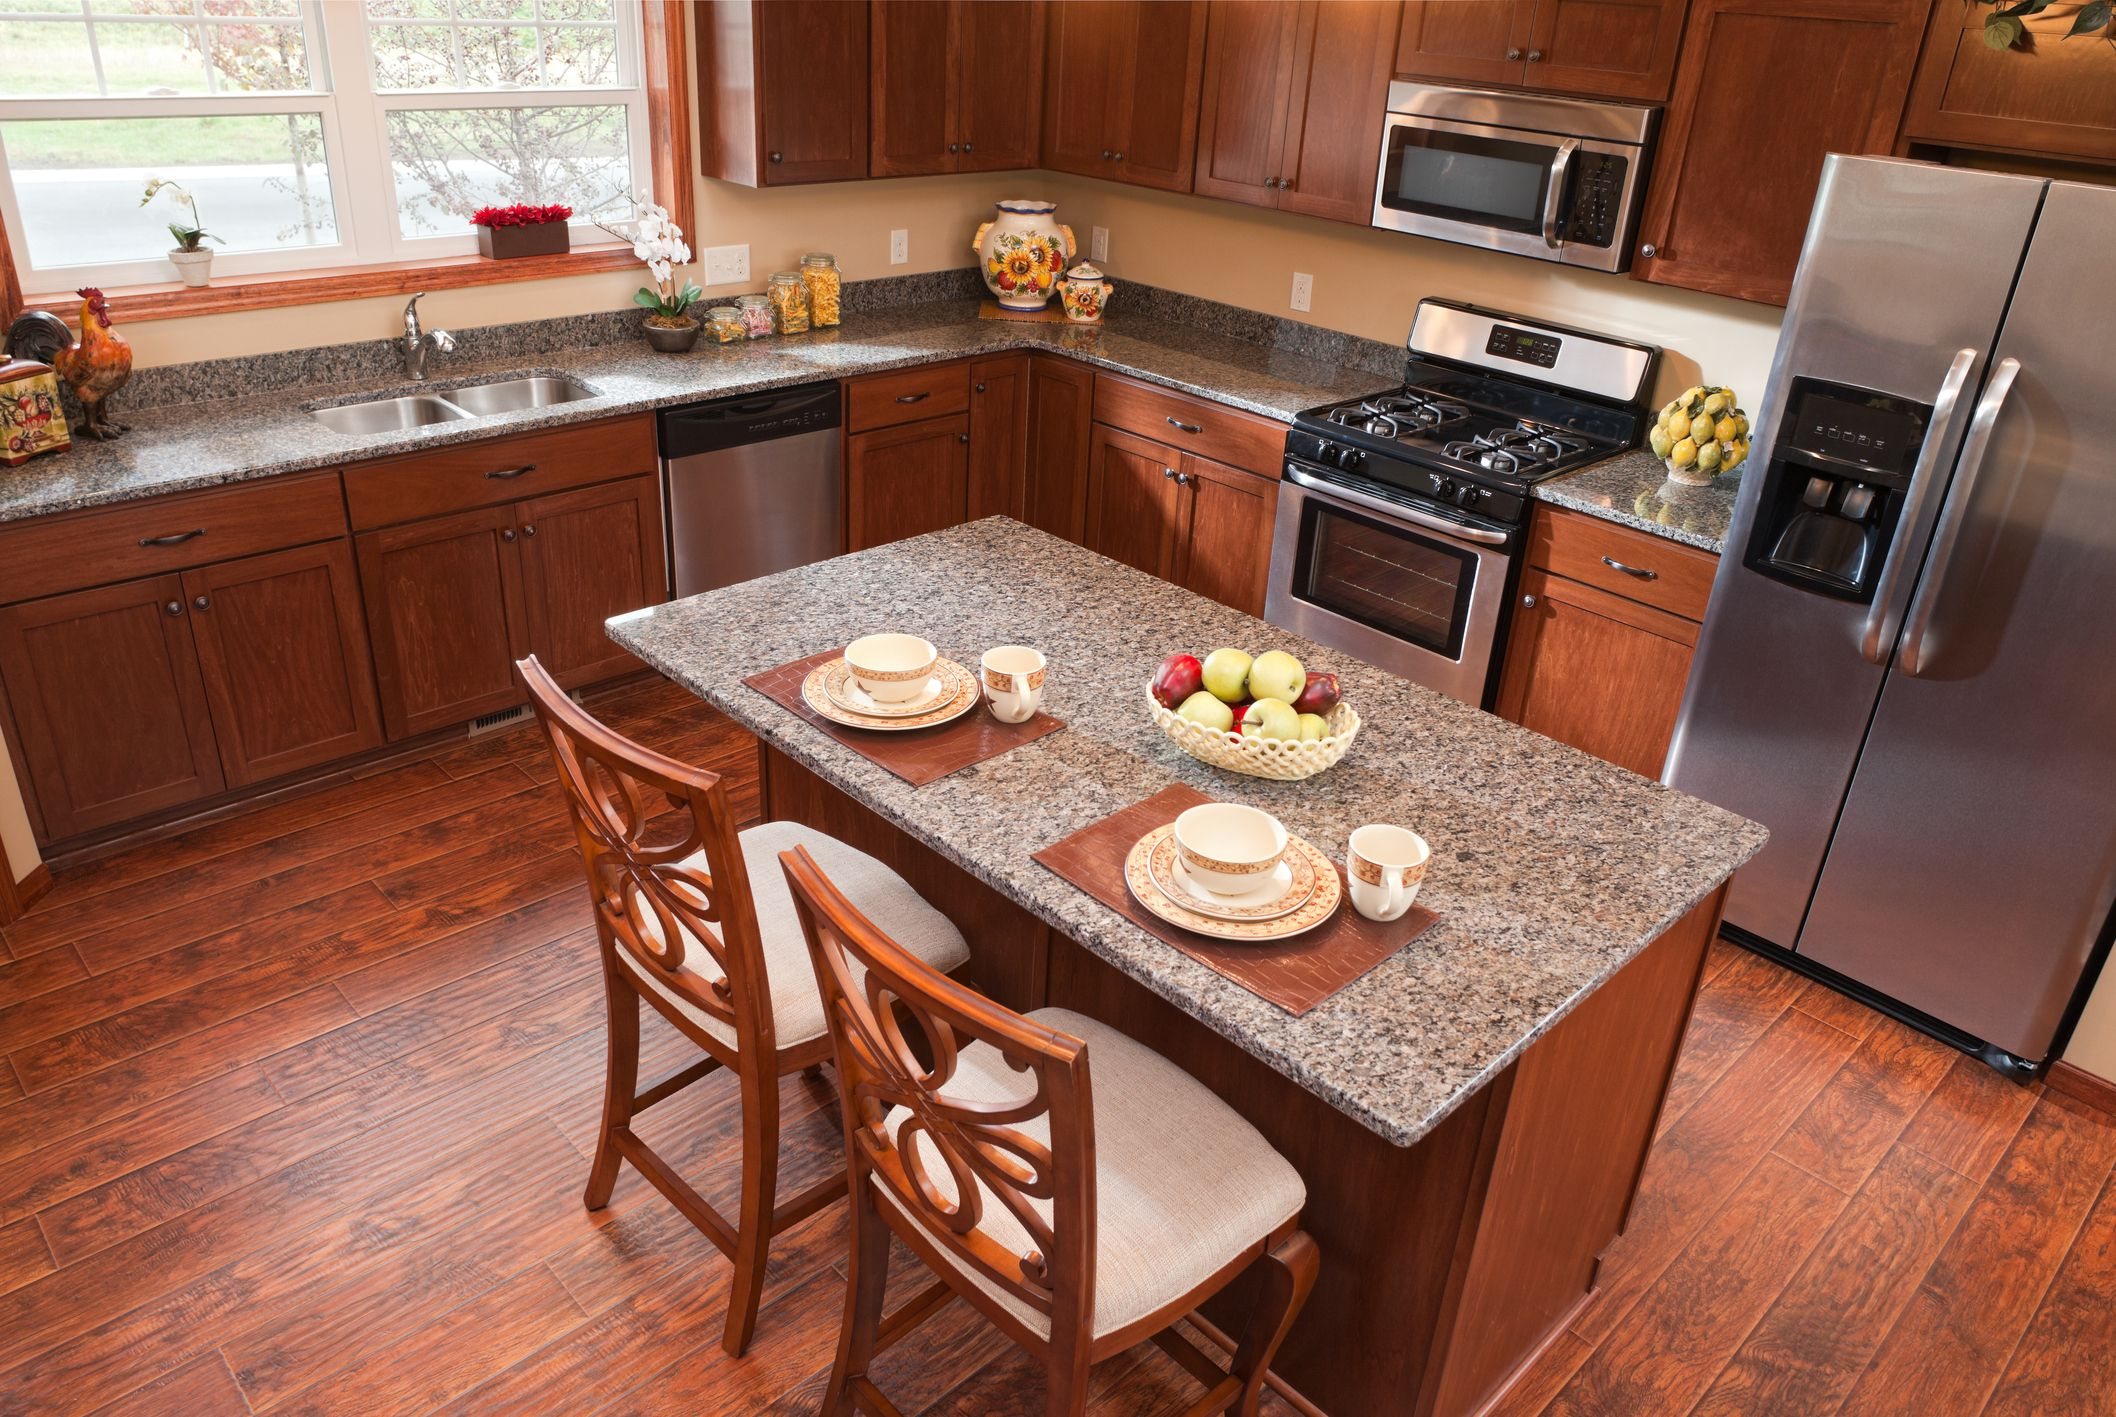 Kitchen Laminate Flooring Can You Install Laminate Flooring In The Kitchen